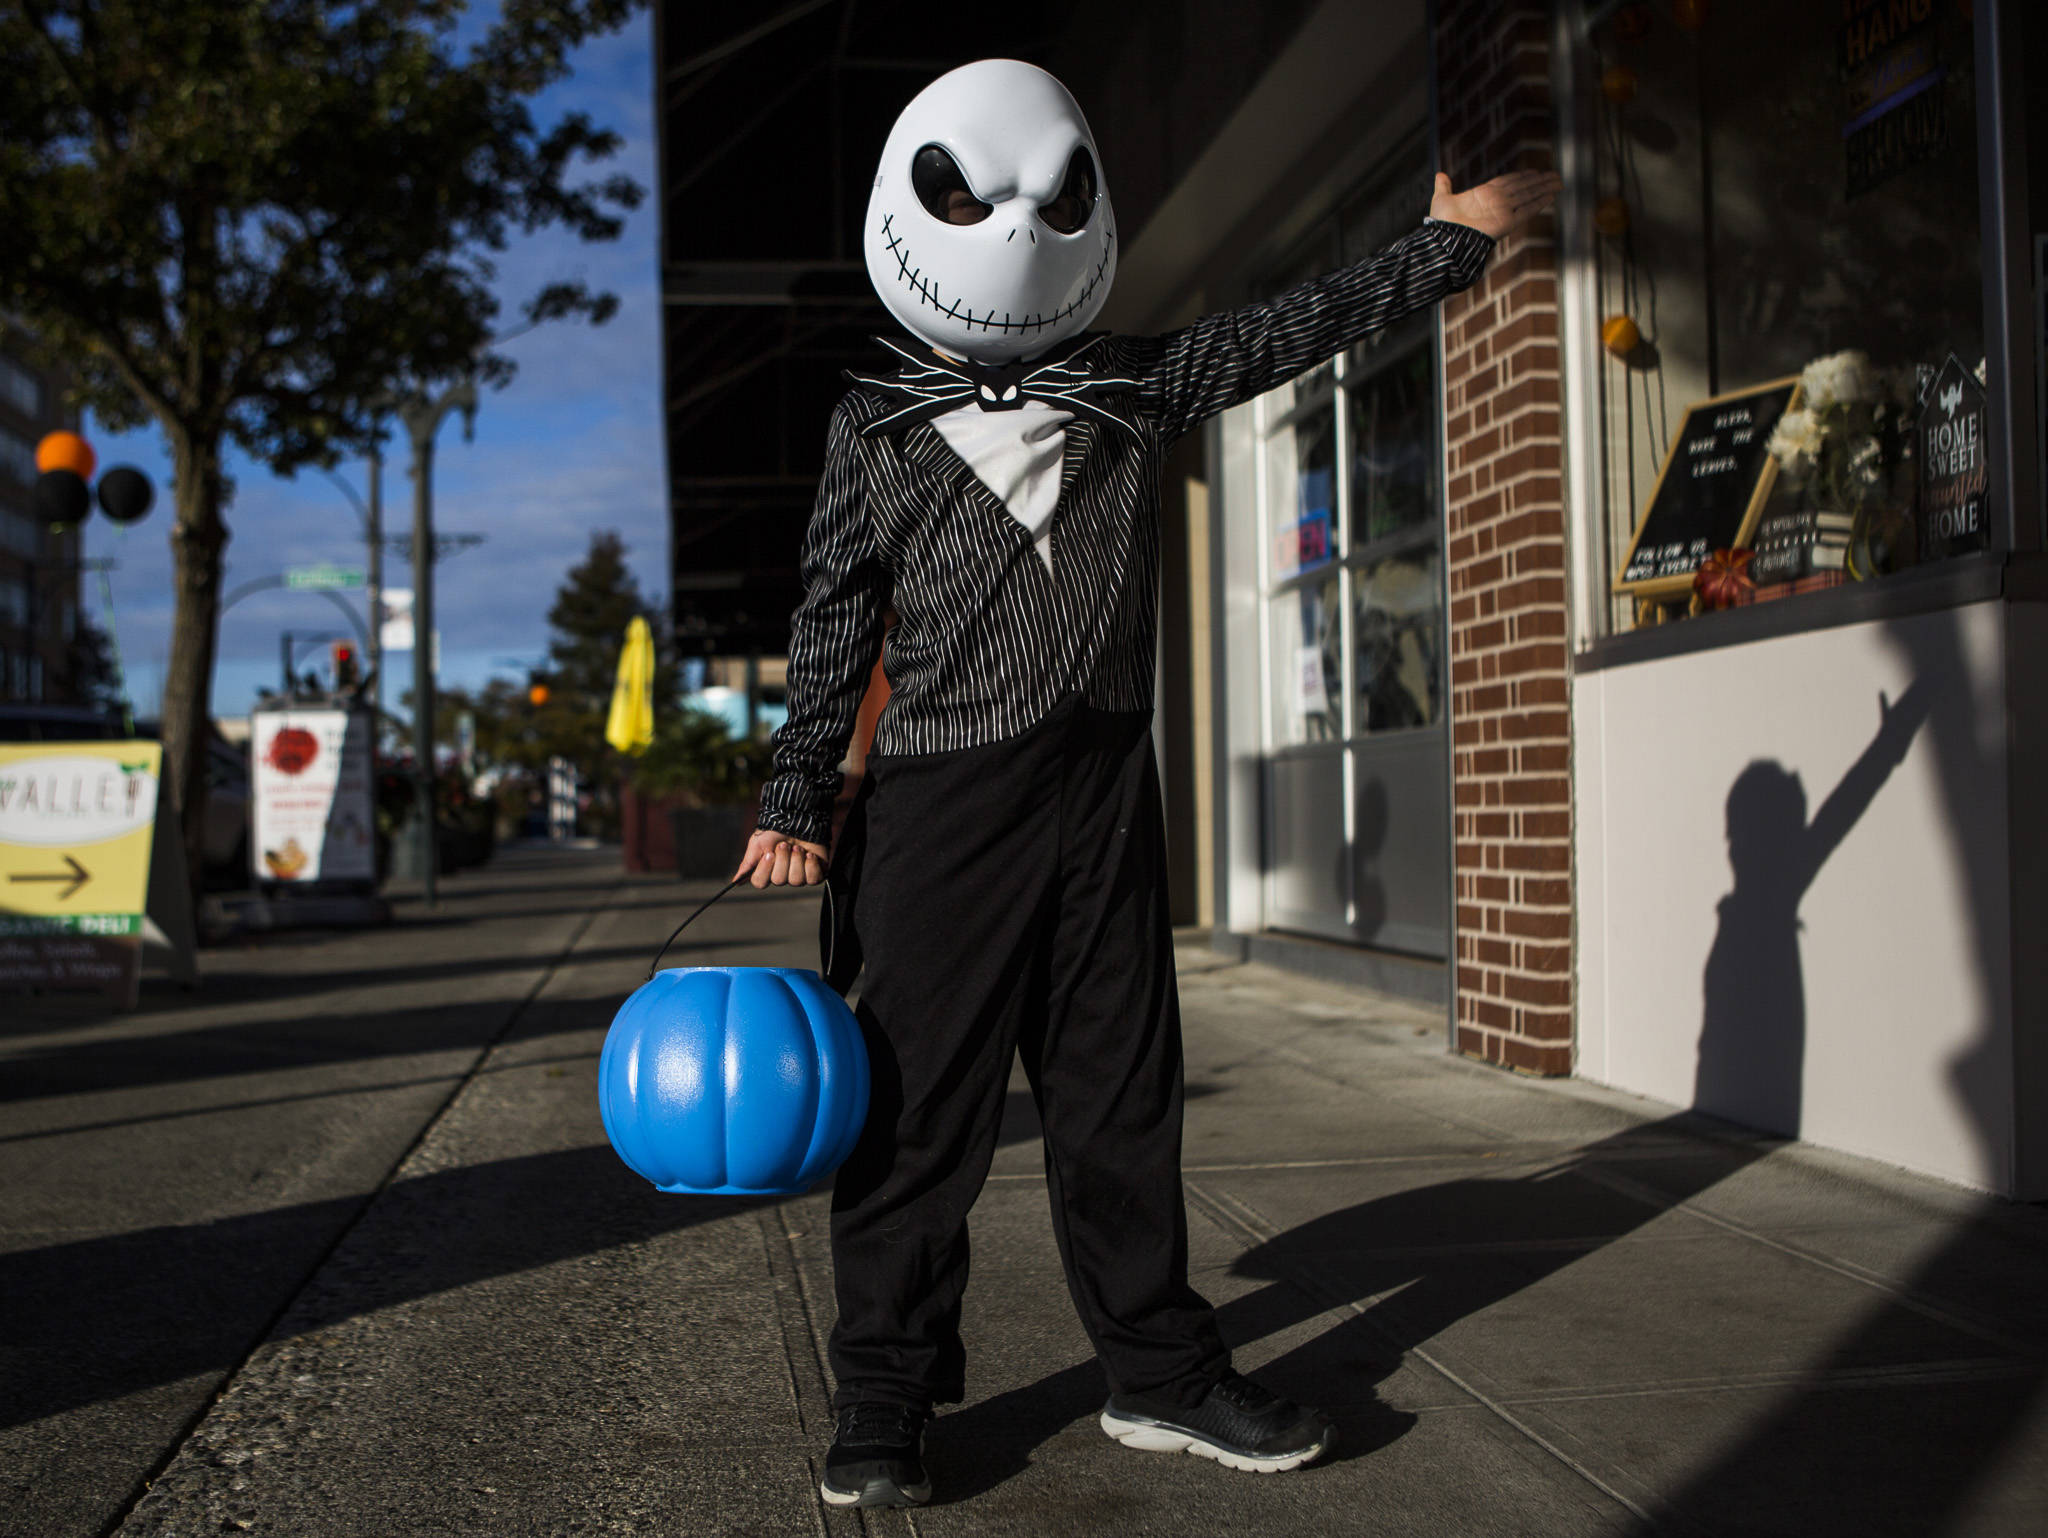 Samuel Pincus, dressed as Jack Skellington from Nightmare Before Christmas, gestures to people to come and grab candy during downtown trick-or-treating Thursday in Everett. (Olivia Vanni / The Herald)